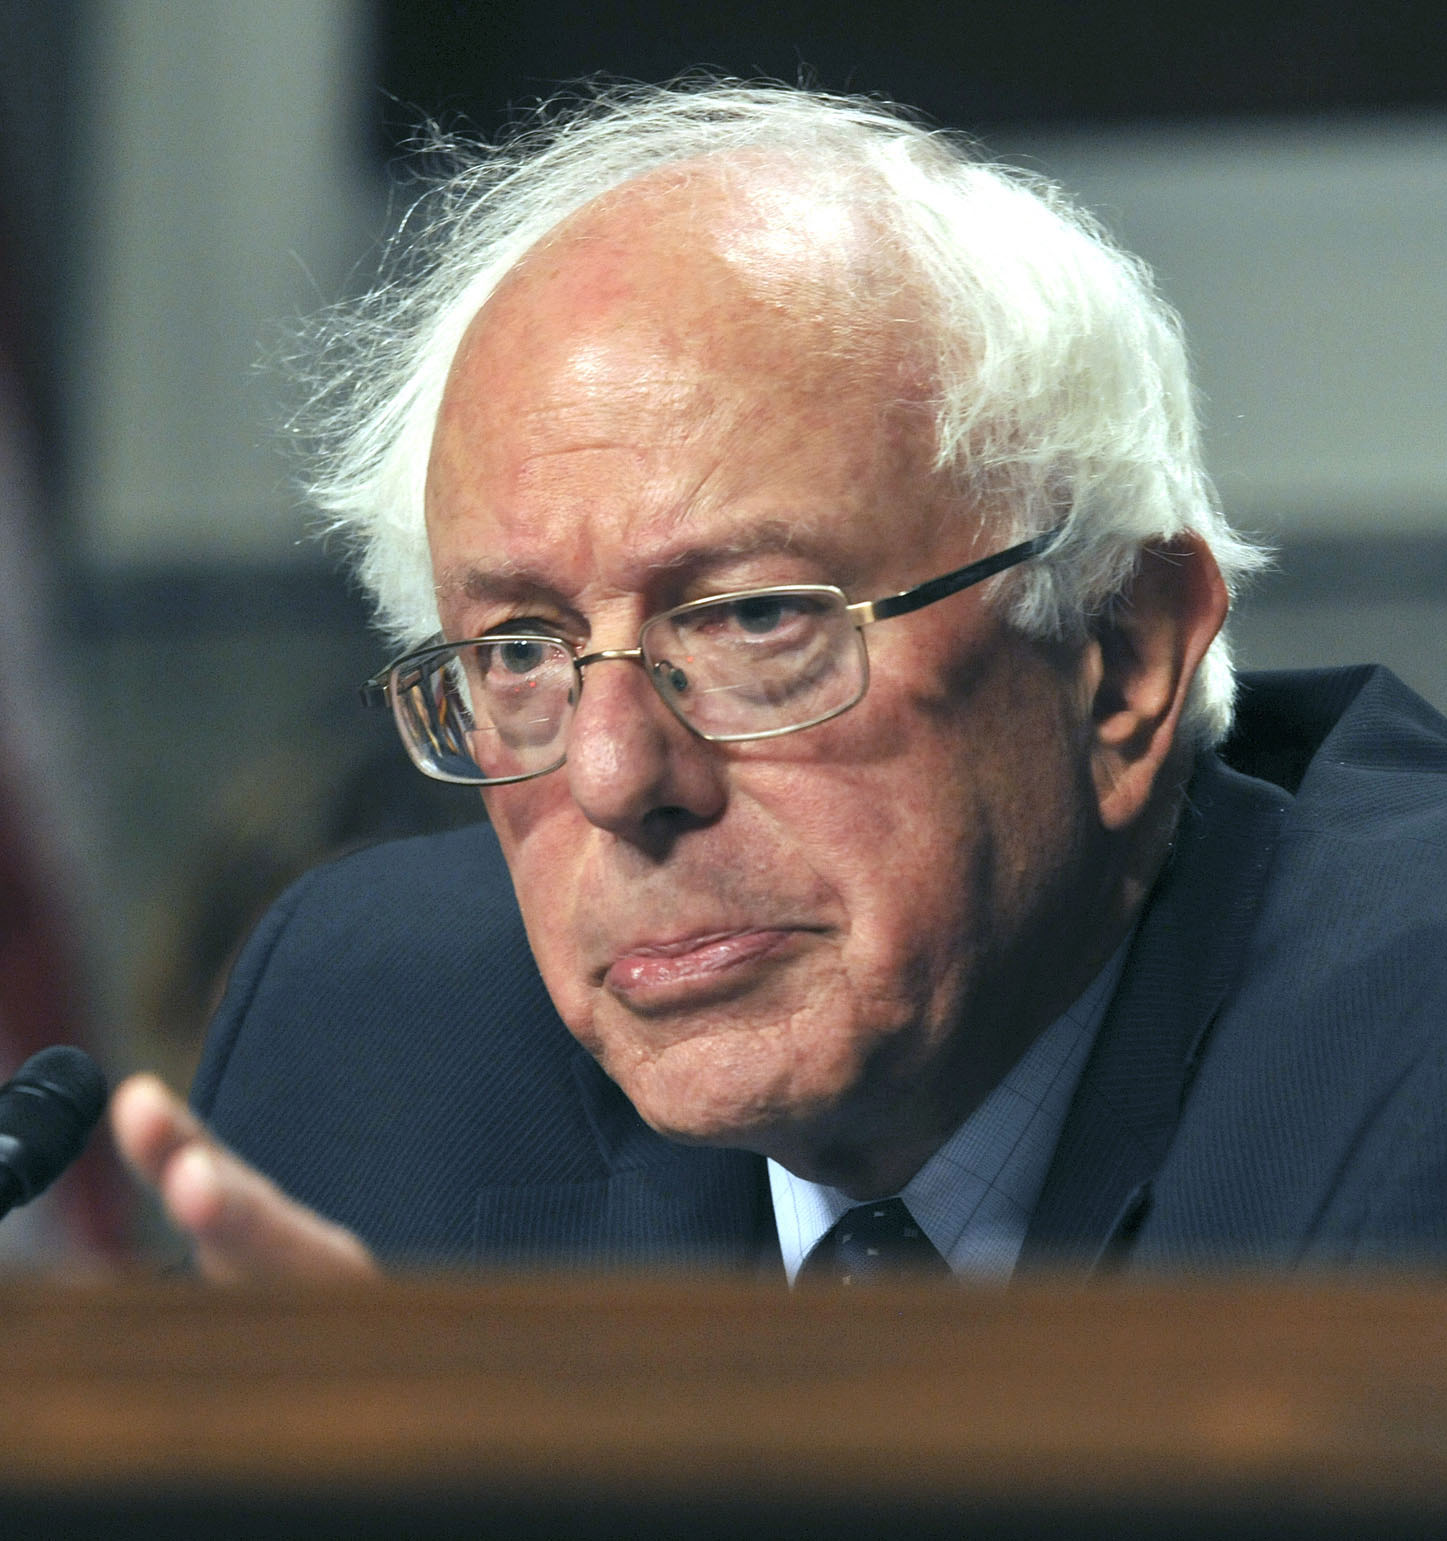 Bernie Sanders, a self-styled progressive and contender for the Democratic presidential nomination in 2016. Pictured here in 2014.